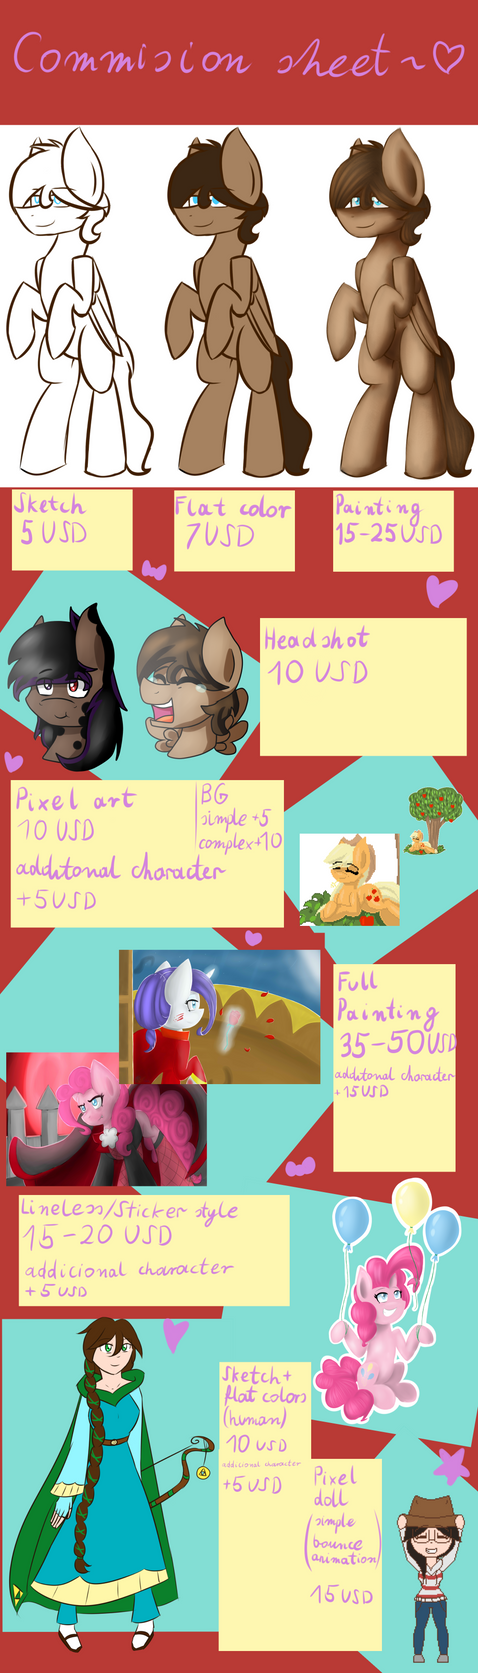 Paypal Commission Sheet by Blairchan231